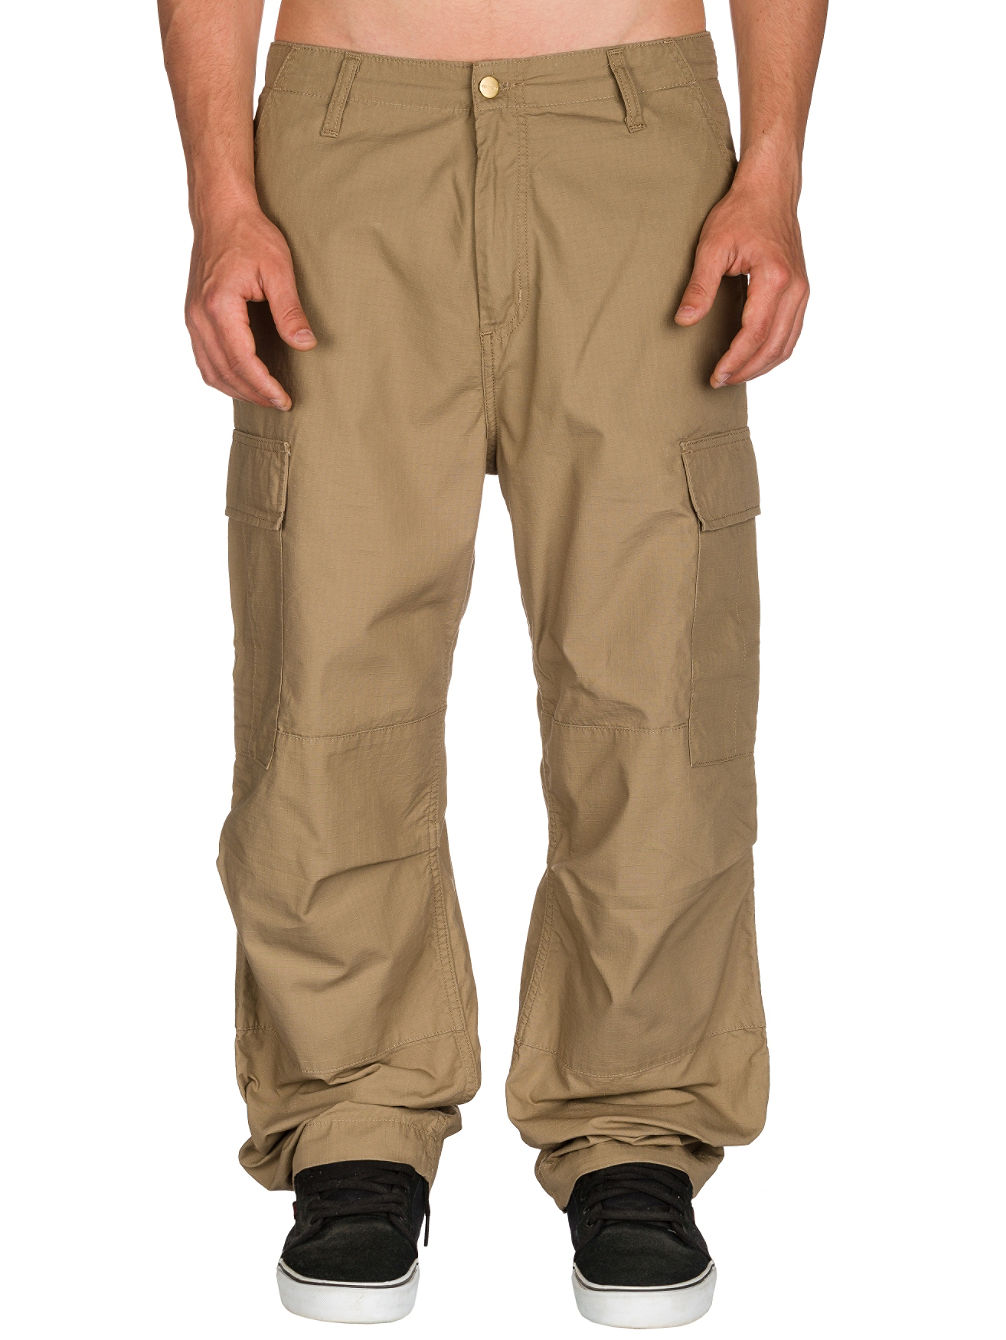 329e954e01 Buy Carhartt WIP Cargo Pants online at Blue Tomato